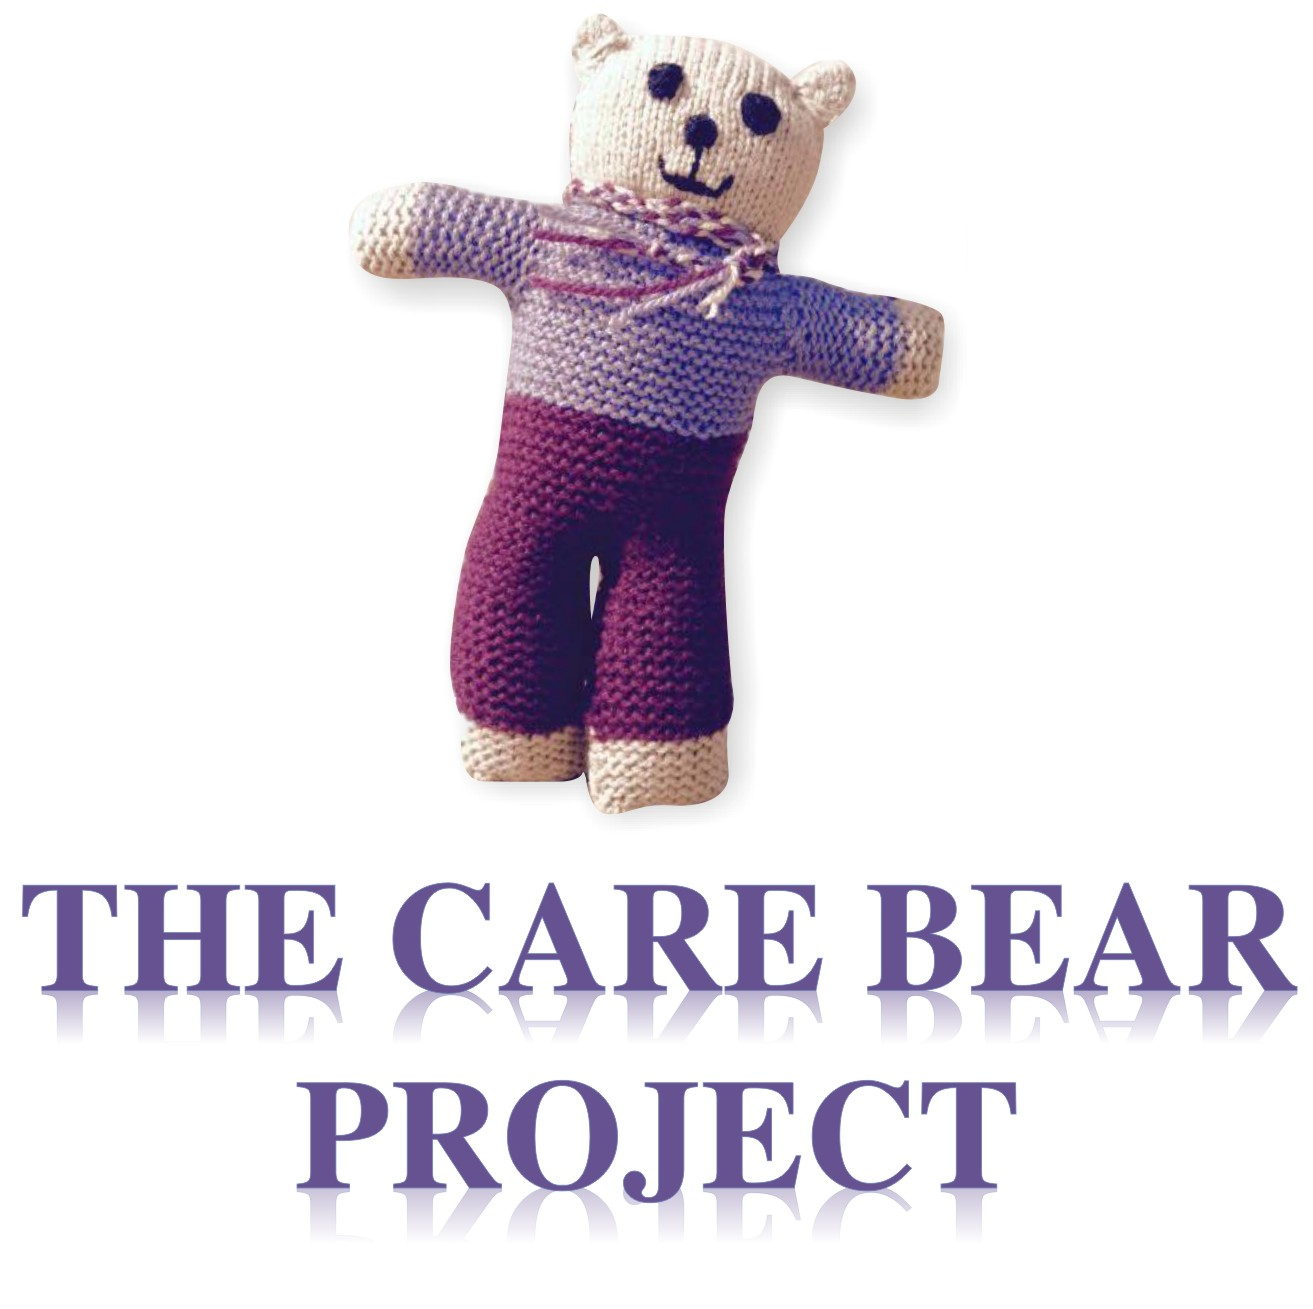 The Care Bear Project